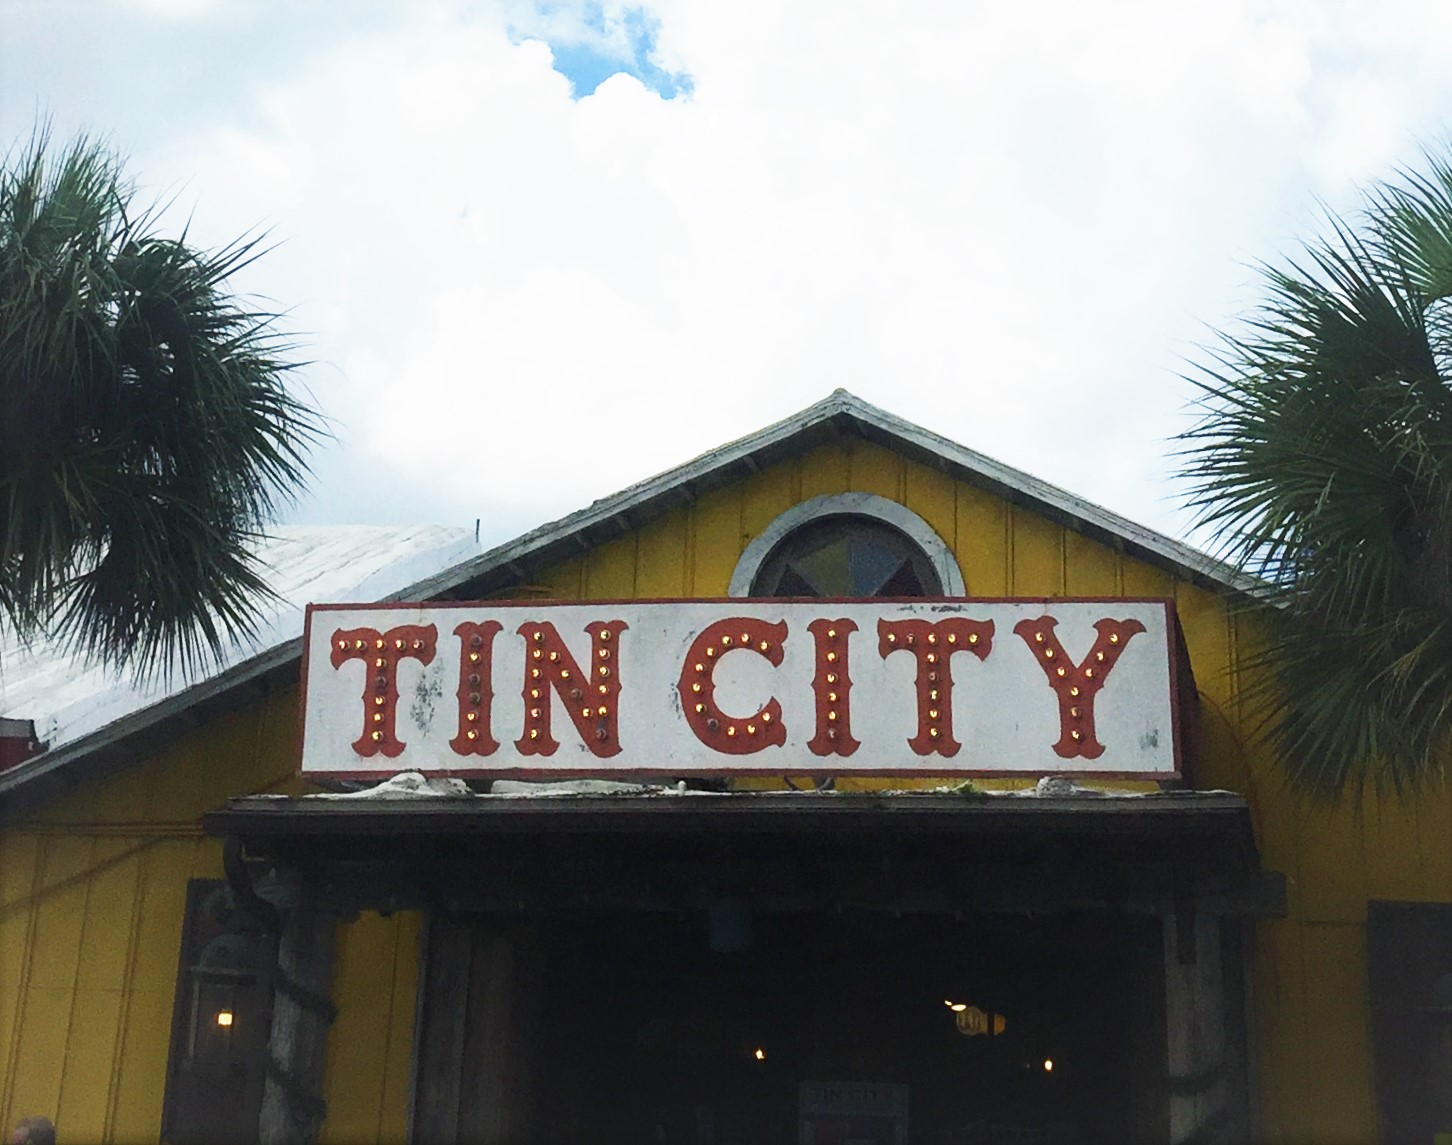 Shopping and boat rides are available in nearby Tin City, a short walk from the Naples Park Central Hotel. Photo credit: M. Ciavardini